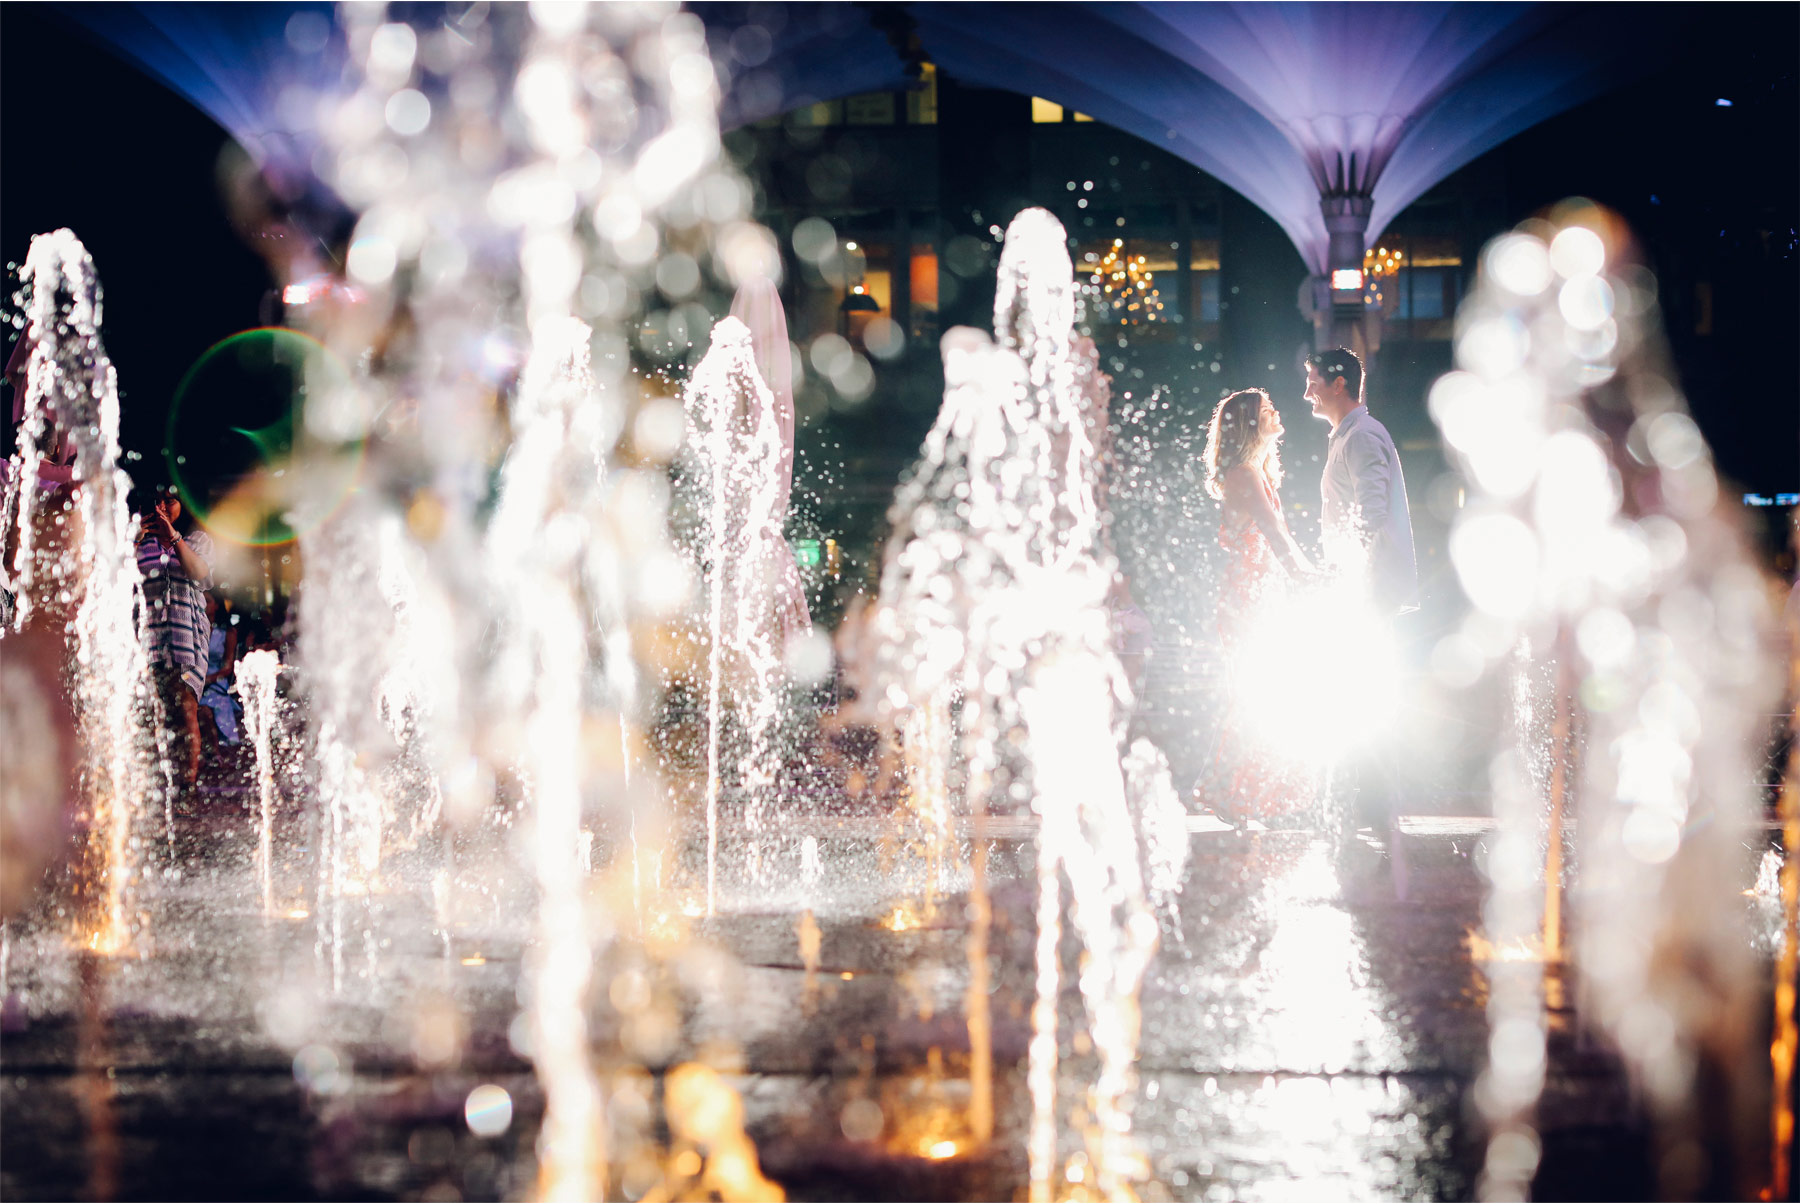 17-Fly-to-Me-Destination-Engagement-Session-Vick-Photography-Fort-Worth-Texas-Couple-Night-Skyline-City-Lights-Downtown-Fountain-Maggie-and-Matt.jpg